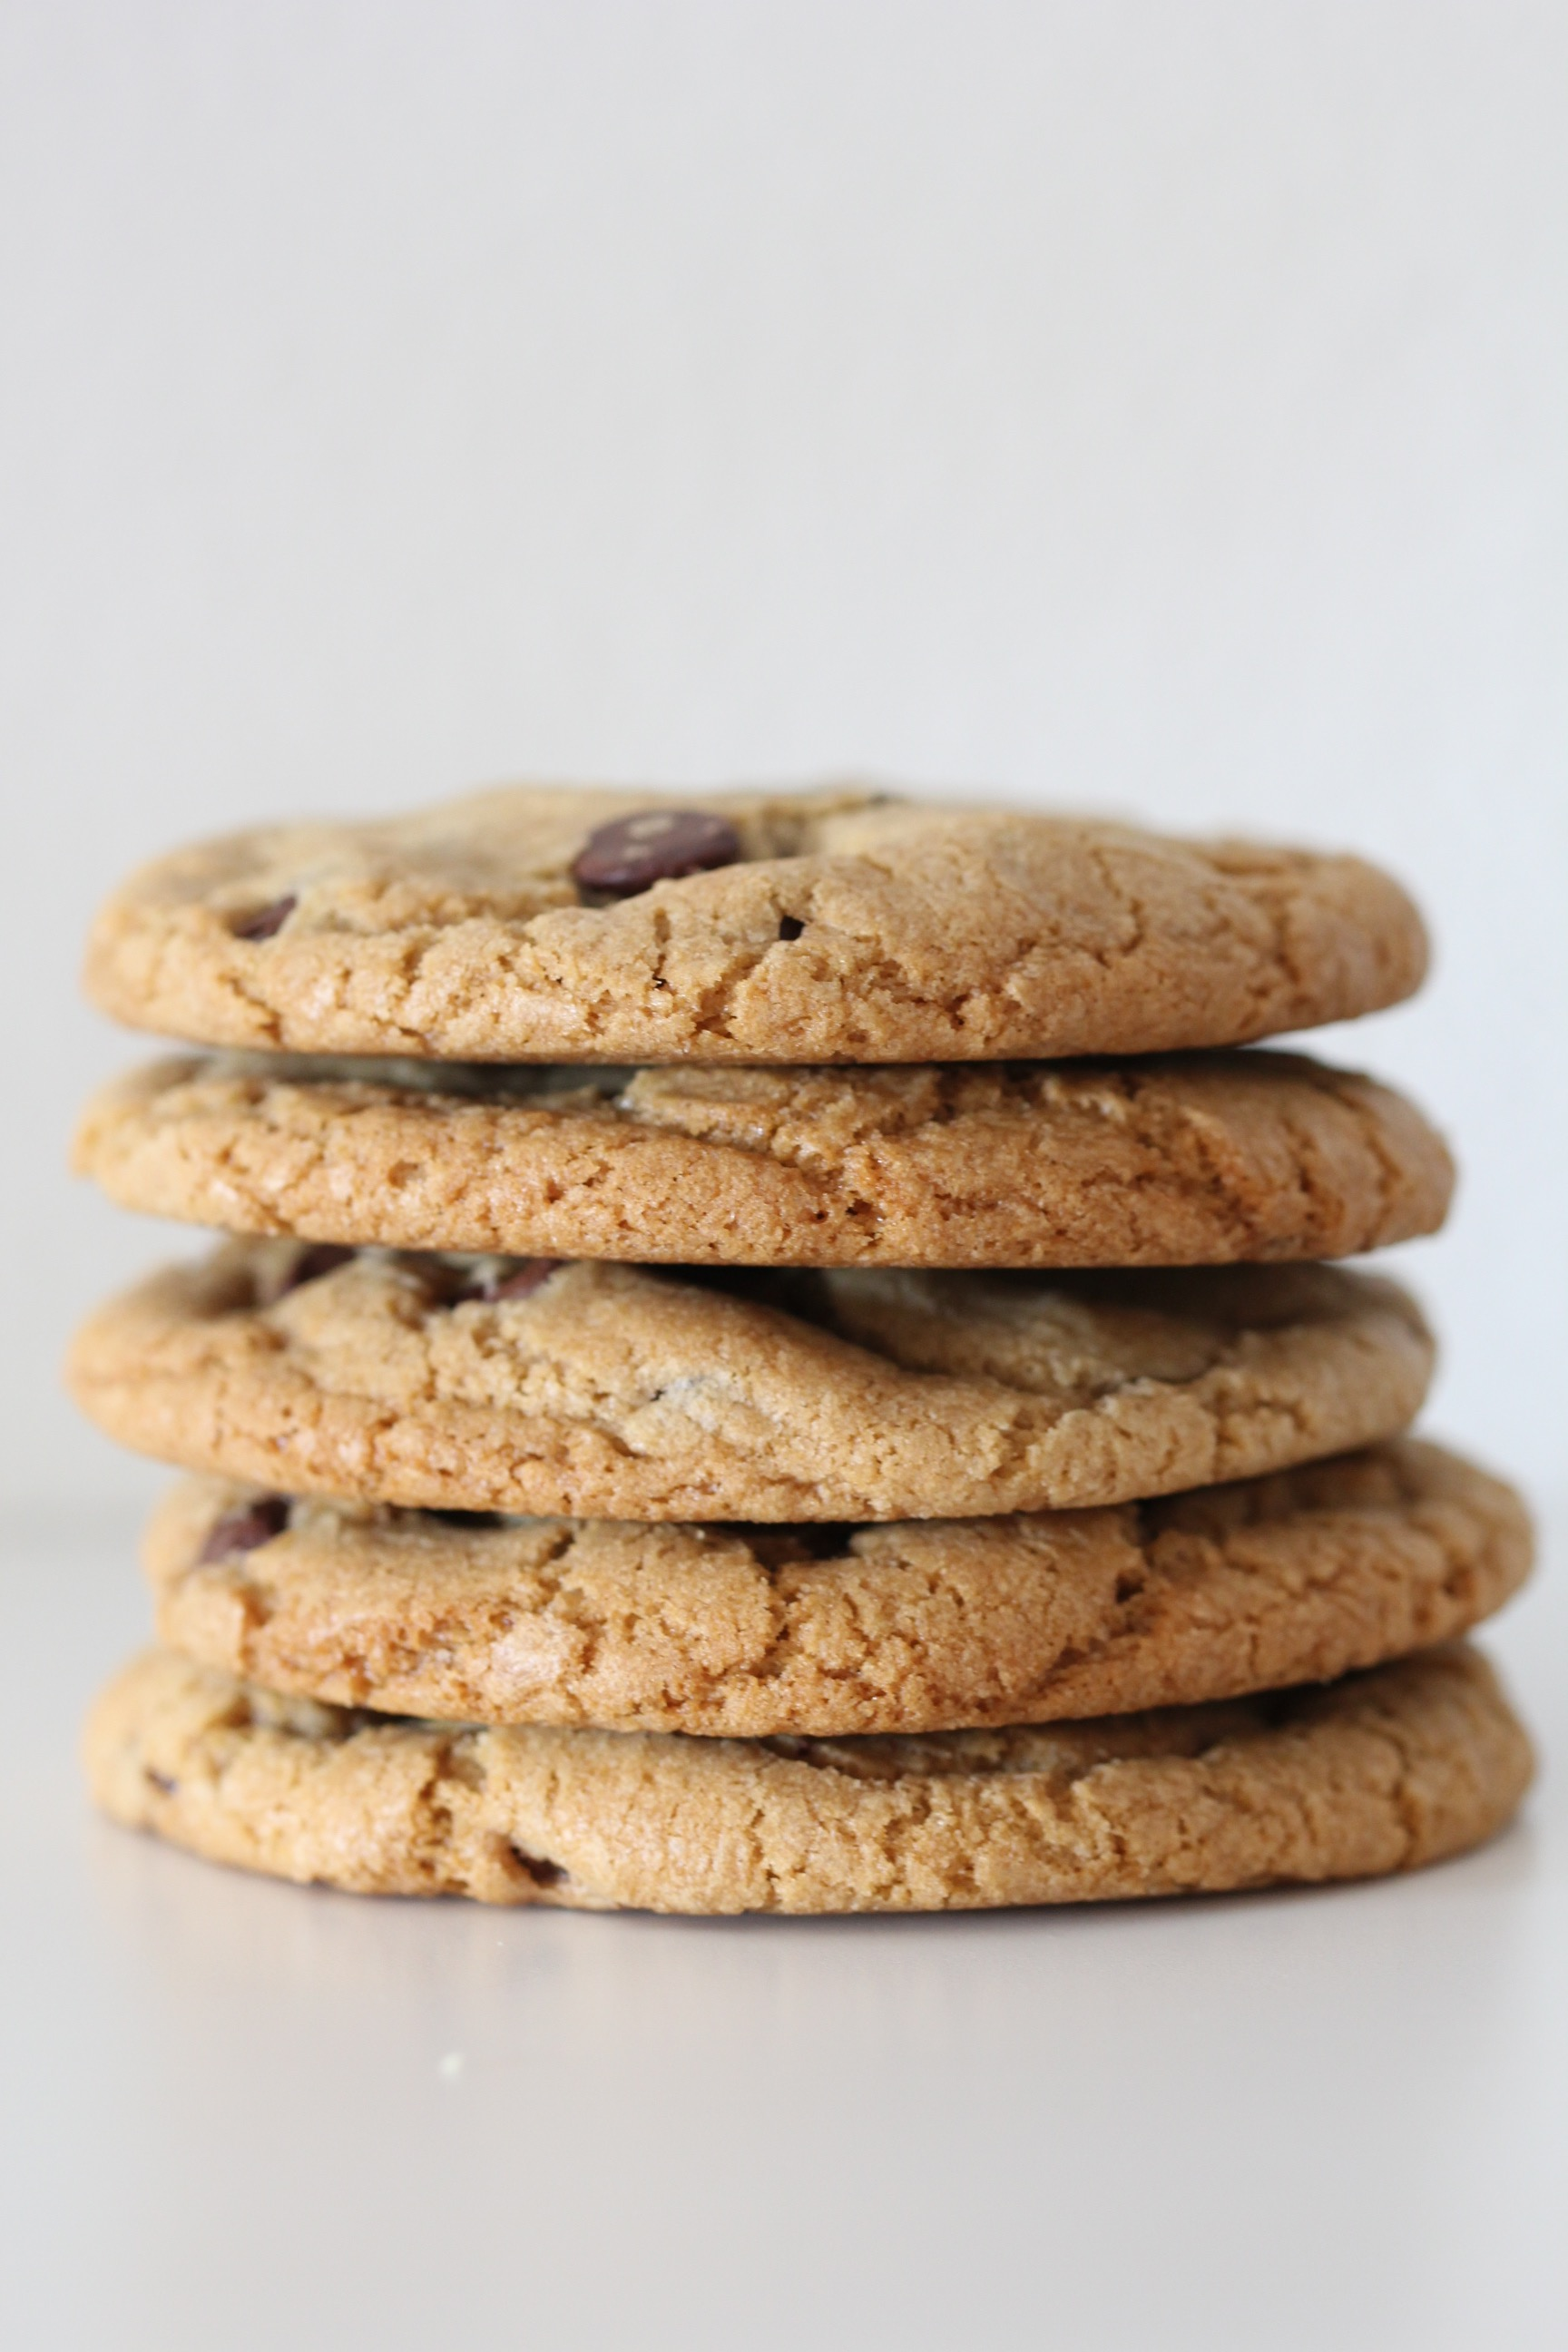 Chocolate Chip Cookies • Everyday • $1.75